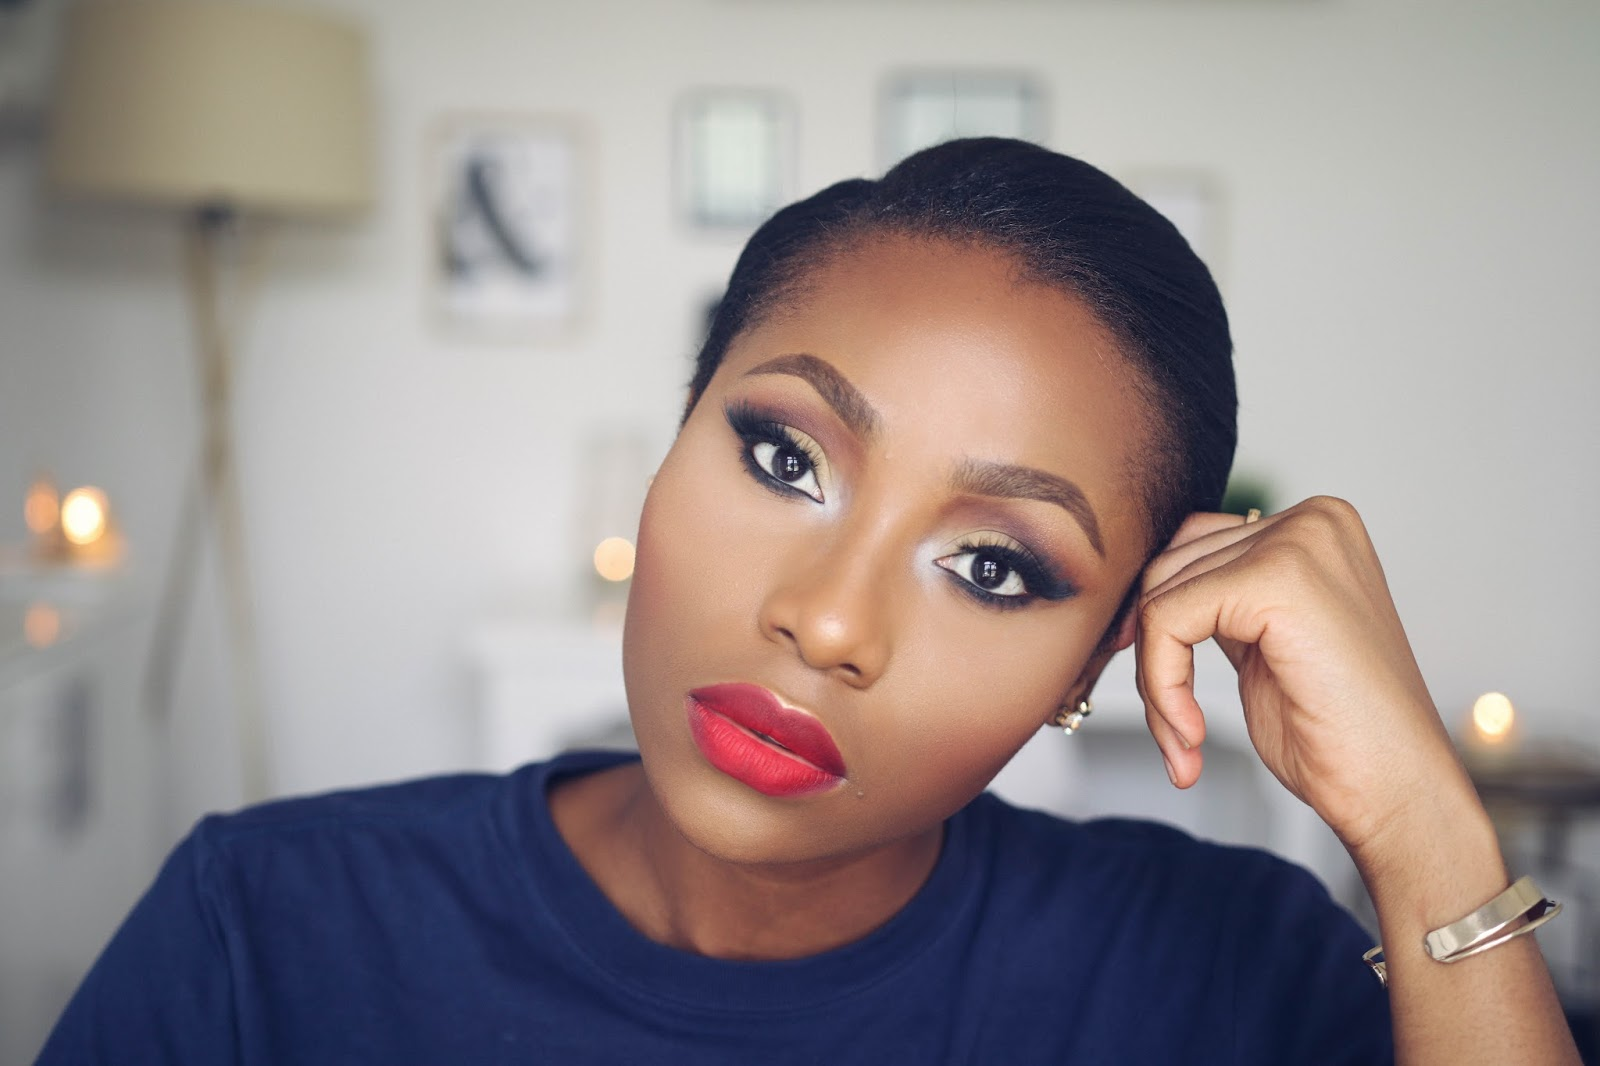 affordable/drugstore makeup tutorial for black women | dimma umeh